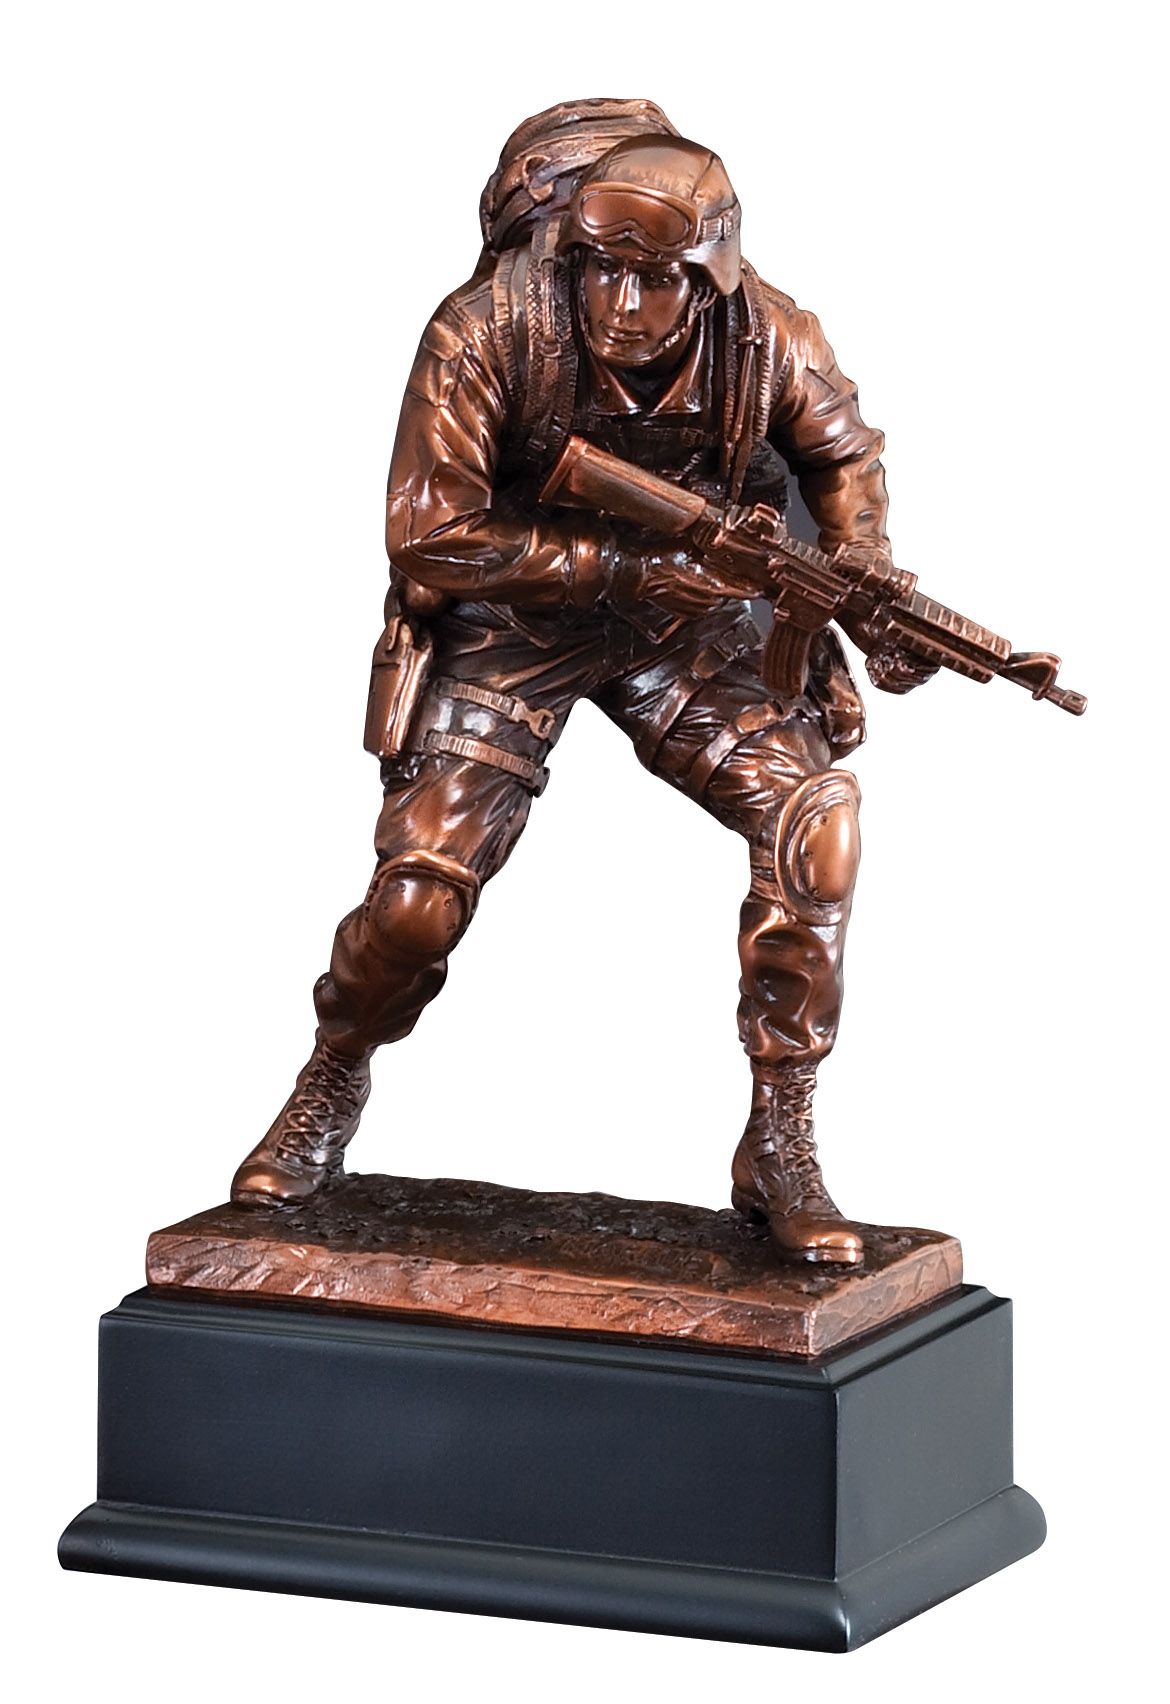 American Hero Marine Bronze Resin Sculpture Awardtrophy